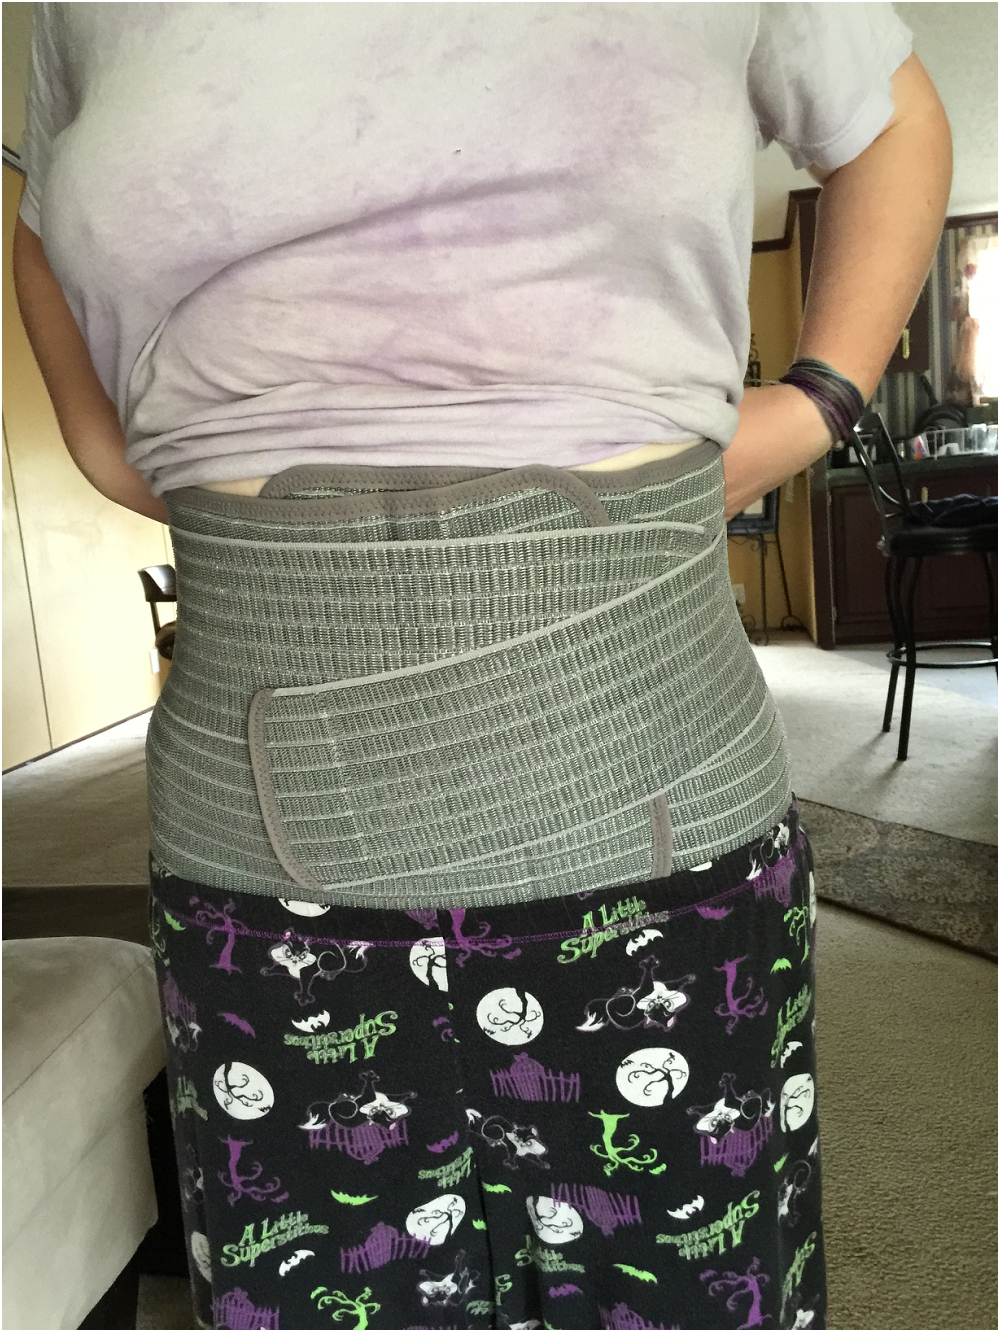 I wasn't exactly dressed to impress, but the Mamaway Belly Band was obviously slimming even on my first attempt to wear it! With additional practice, it was even more effective!